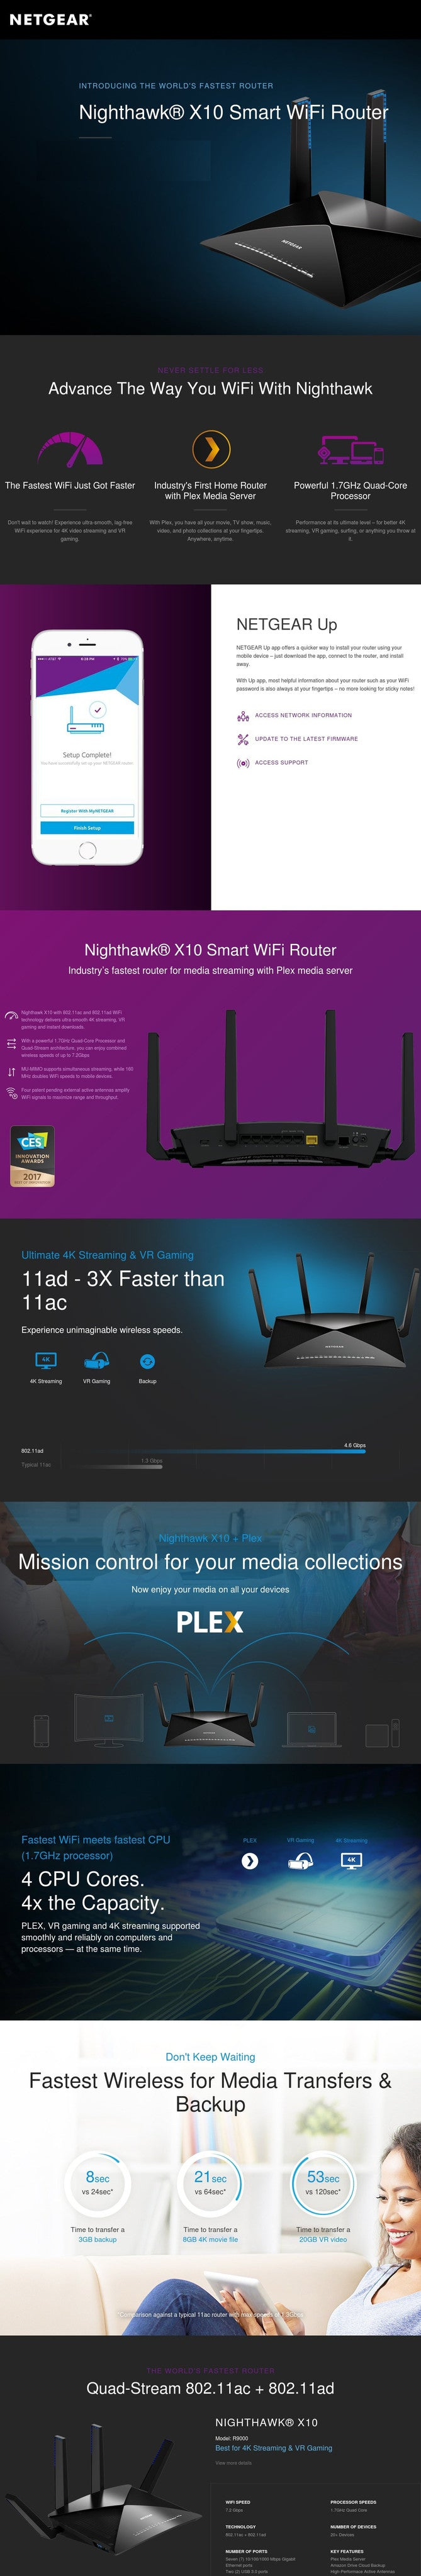 NetGear NightHawk X10 R9000 AD7200 Smart Wifi Router